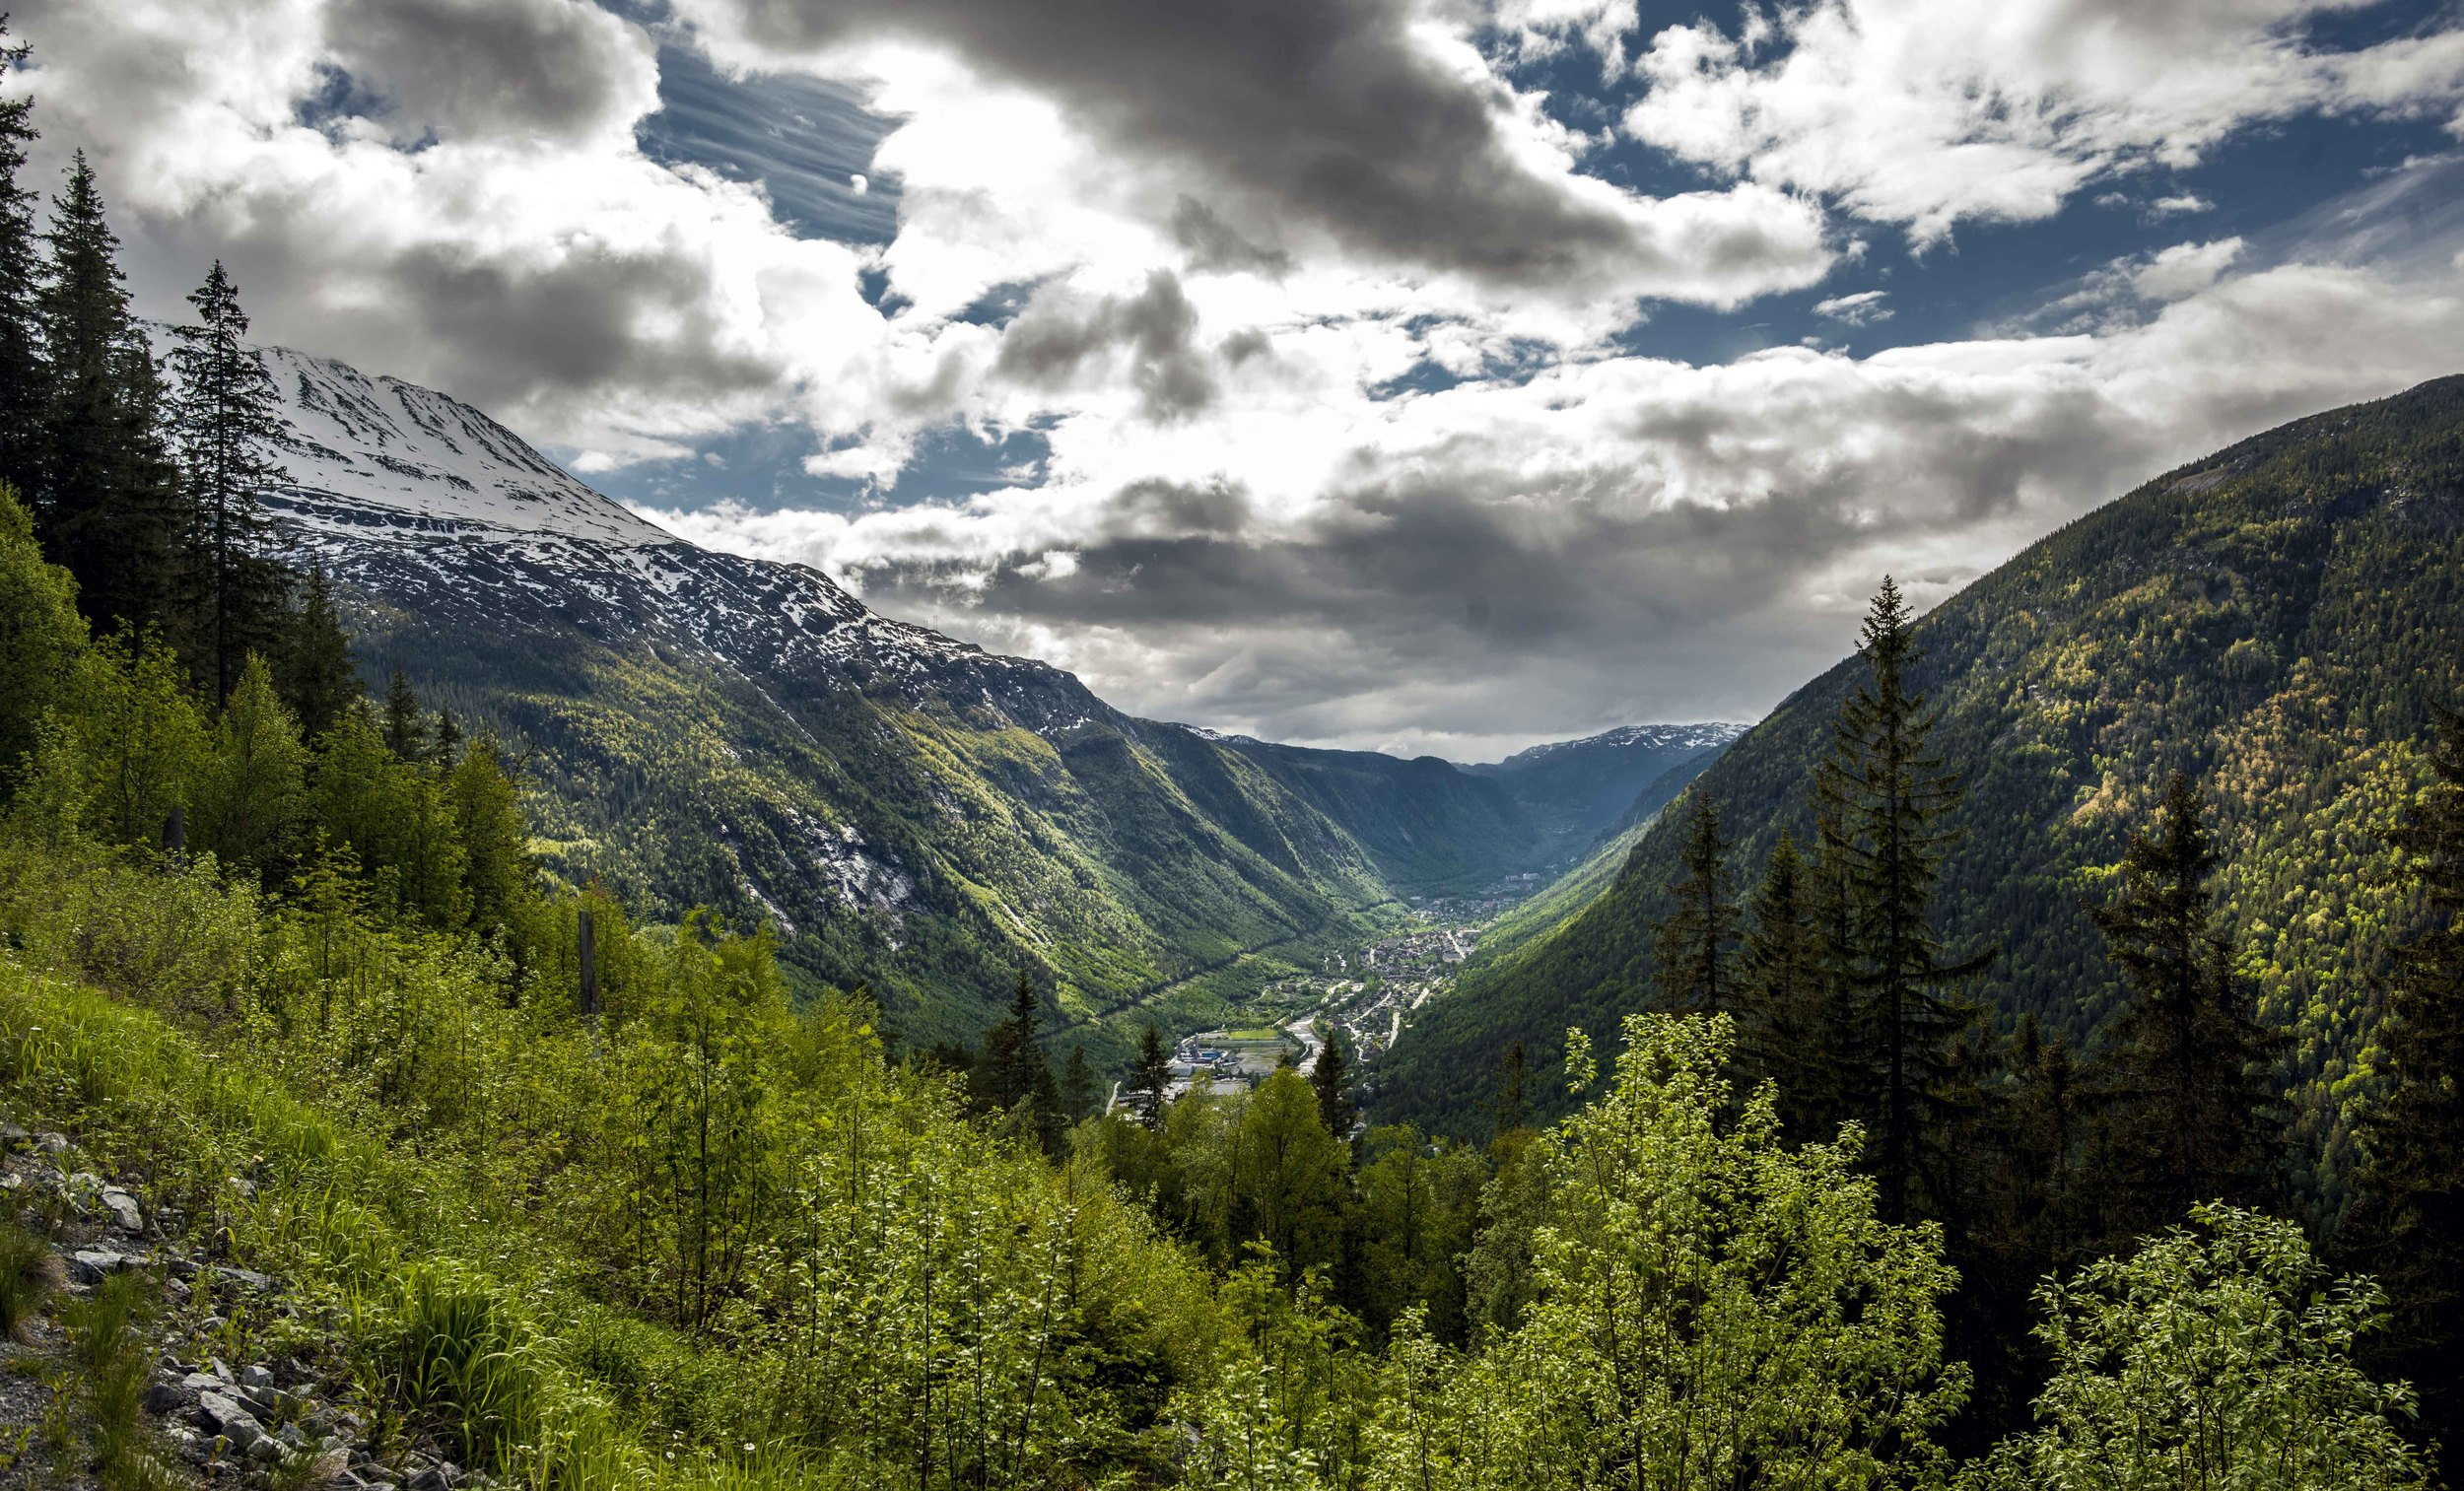 Part view of Rjukan